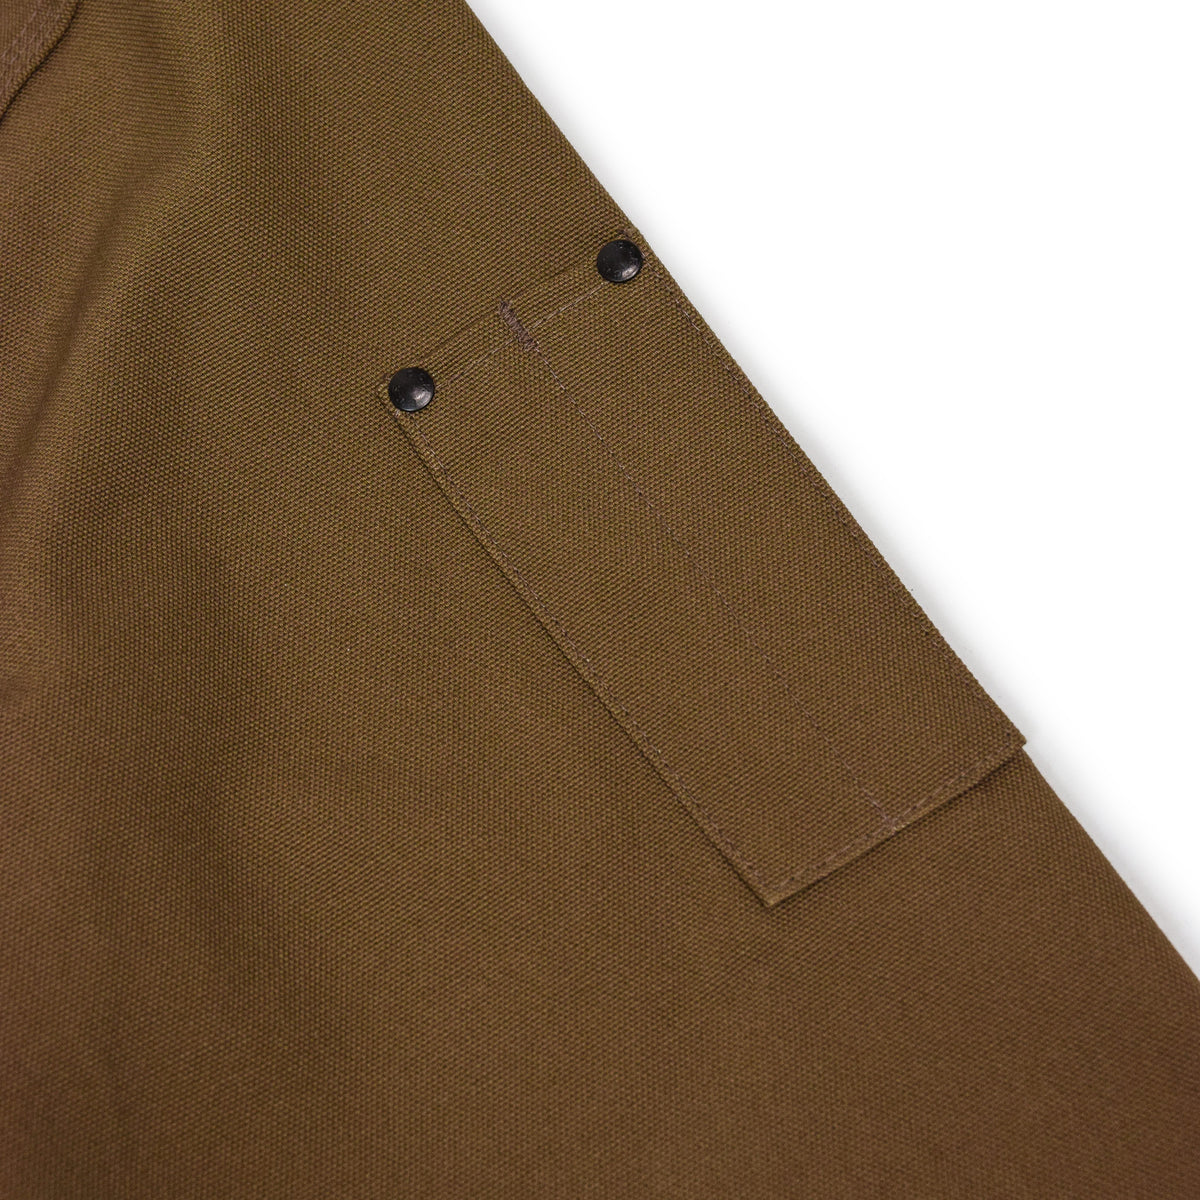 Filson CCF Duck Canvas Bomber Jacket Sepia ARM DETAIL